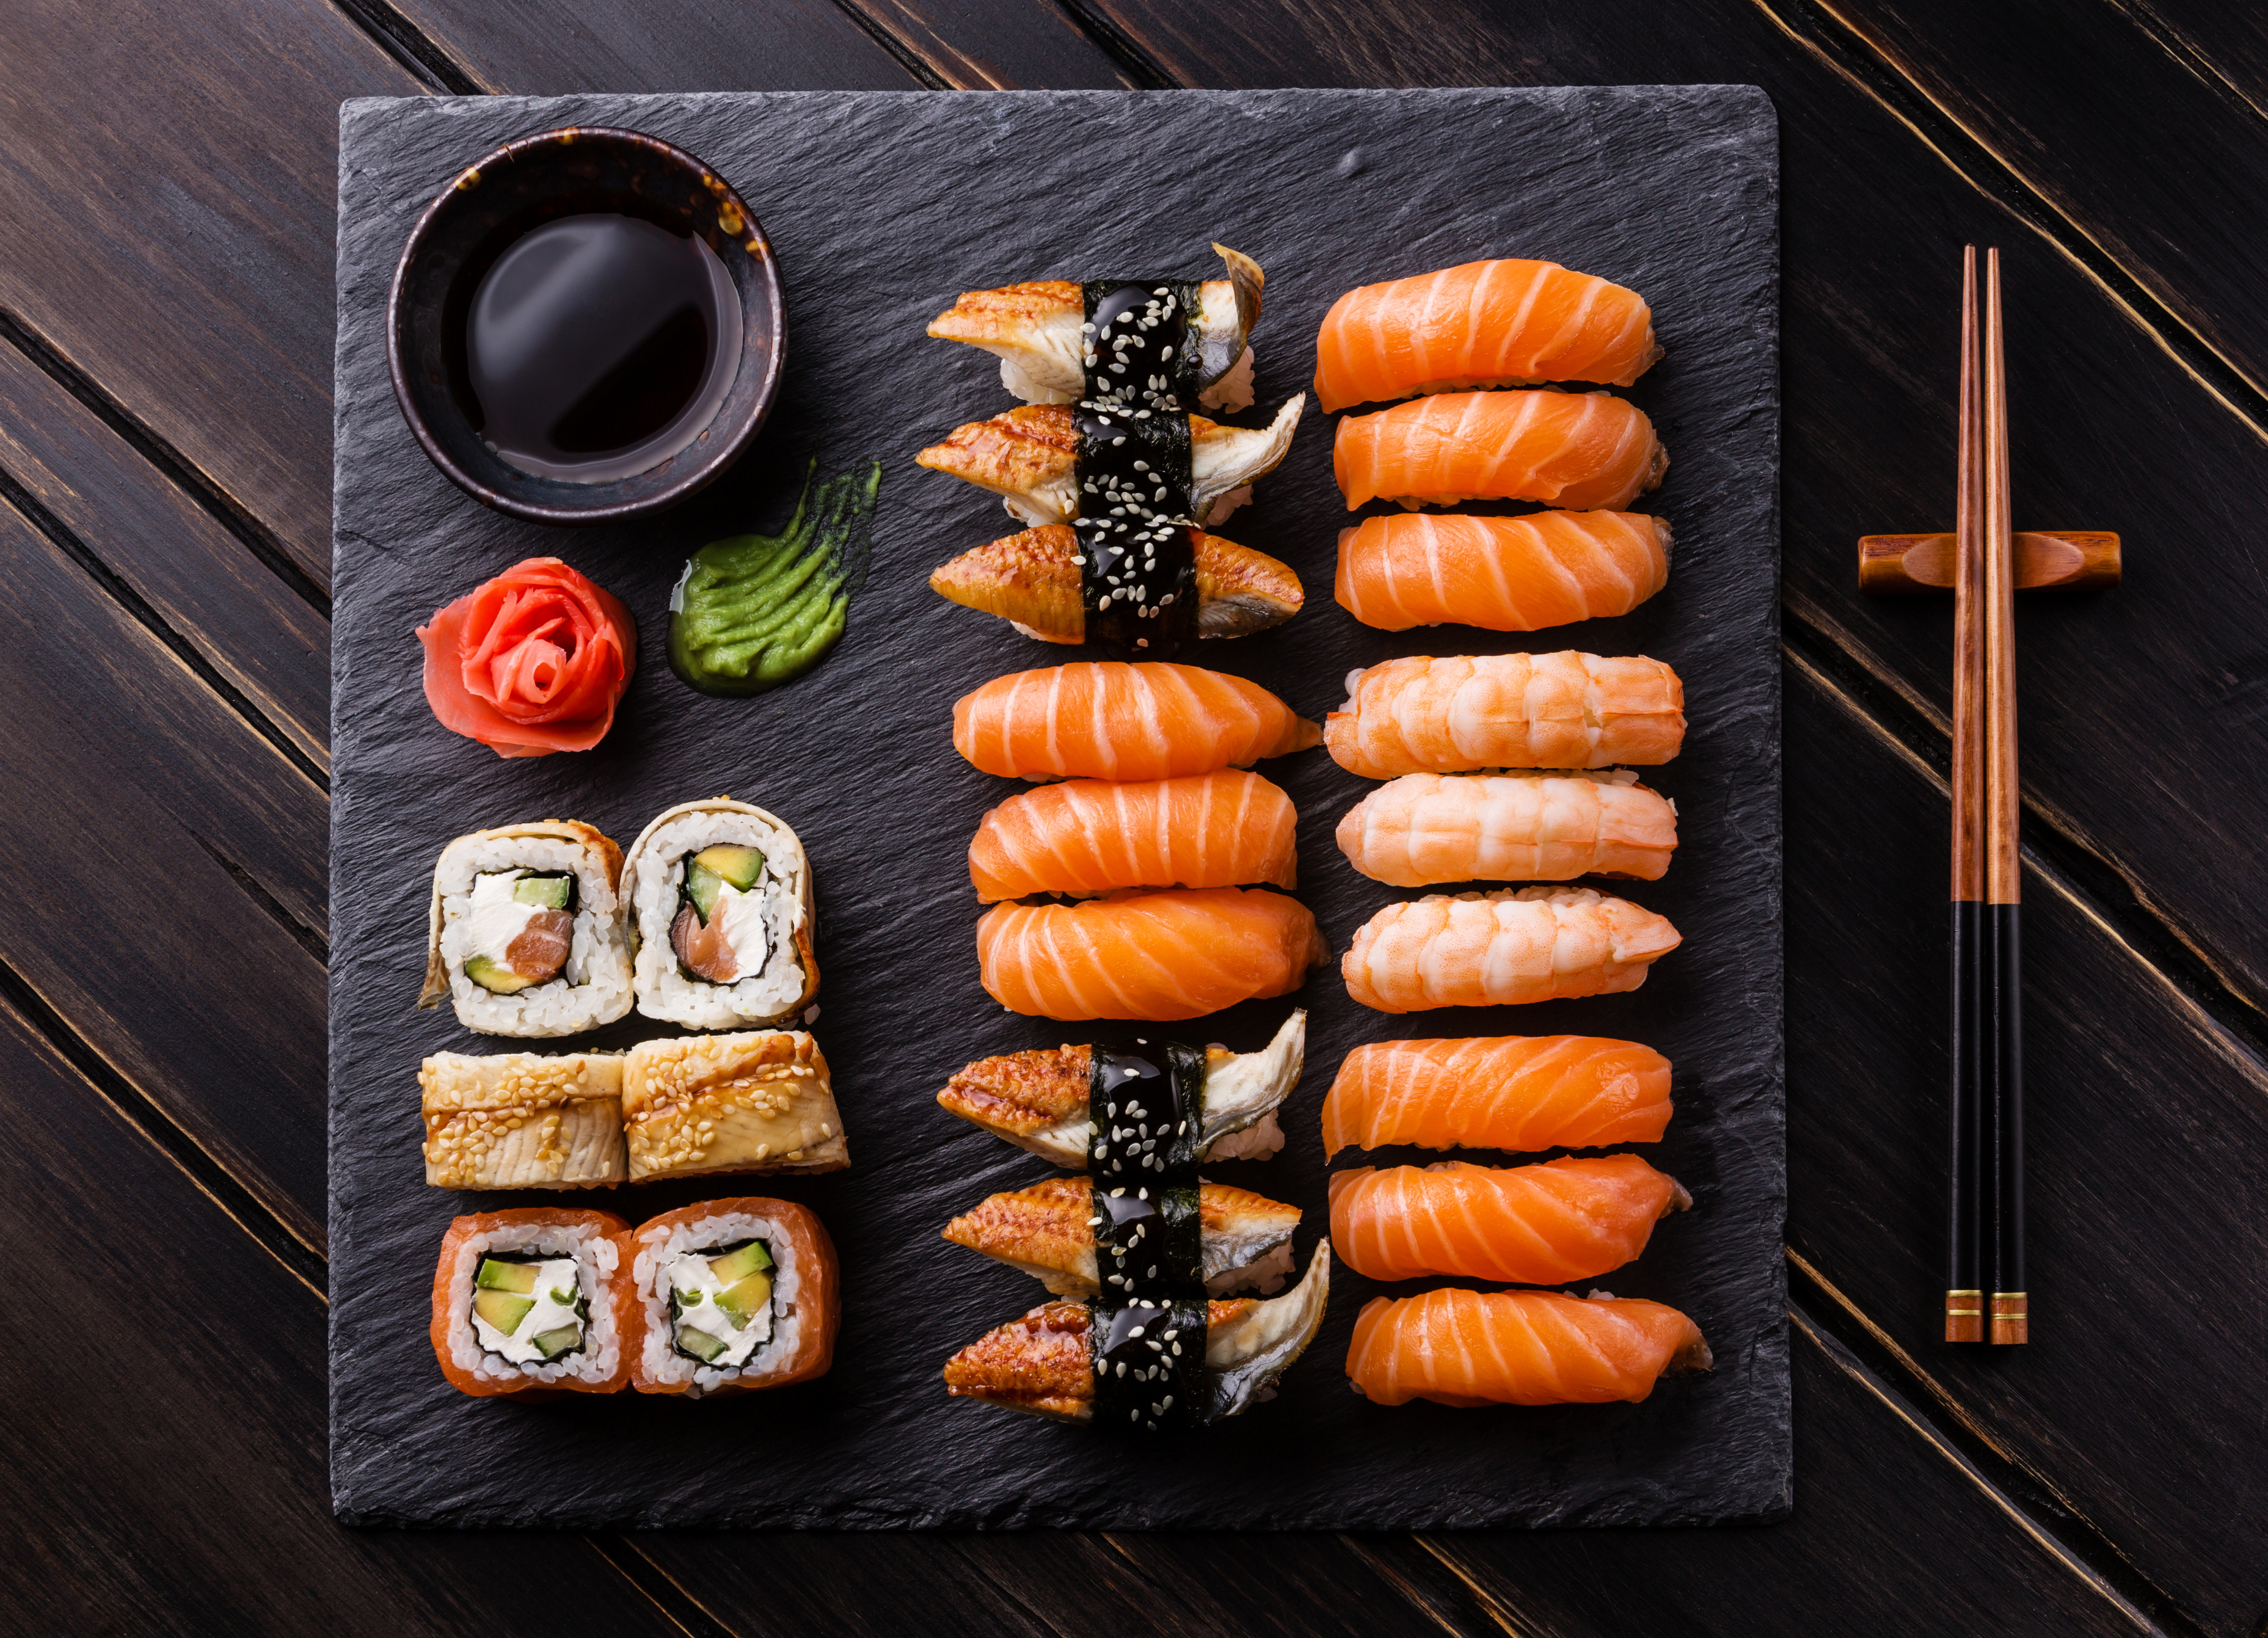 How To Make Sushi At Home with Dominion Ridge